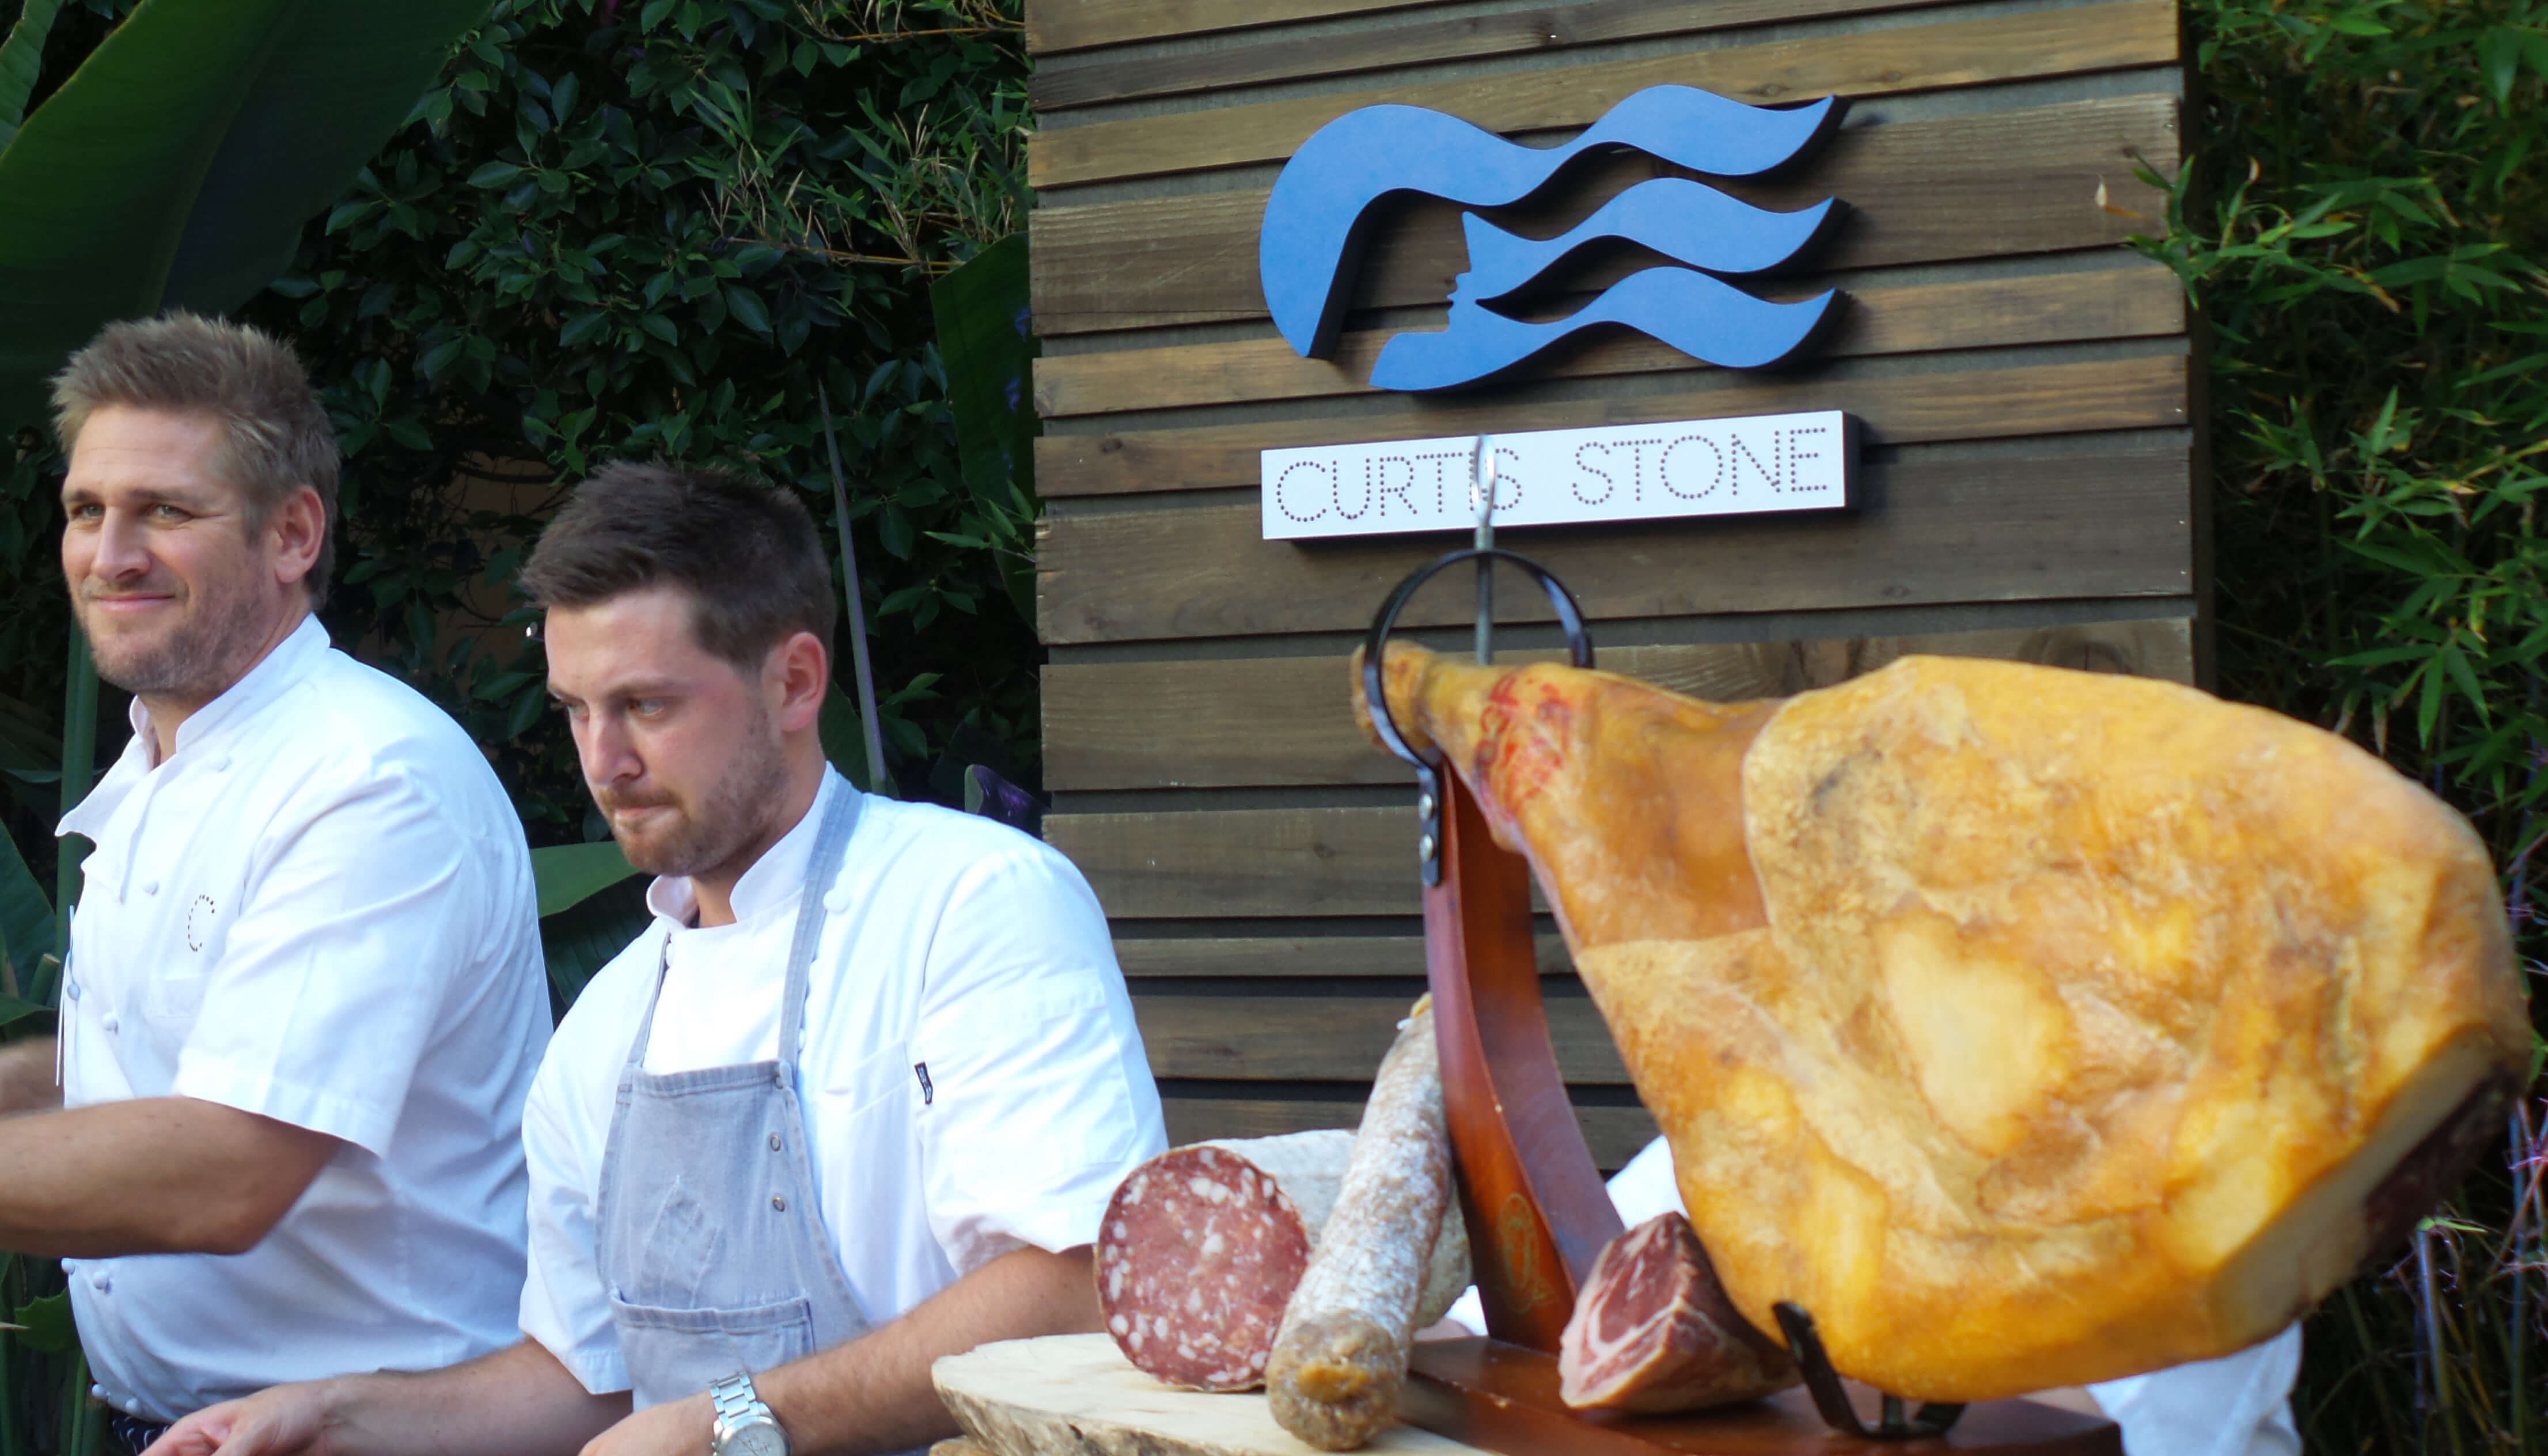 Chefs Curtis and Christian serve the charcuterie items.